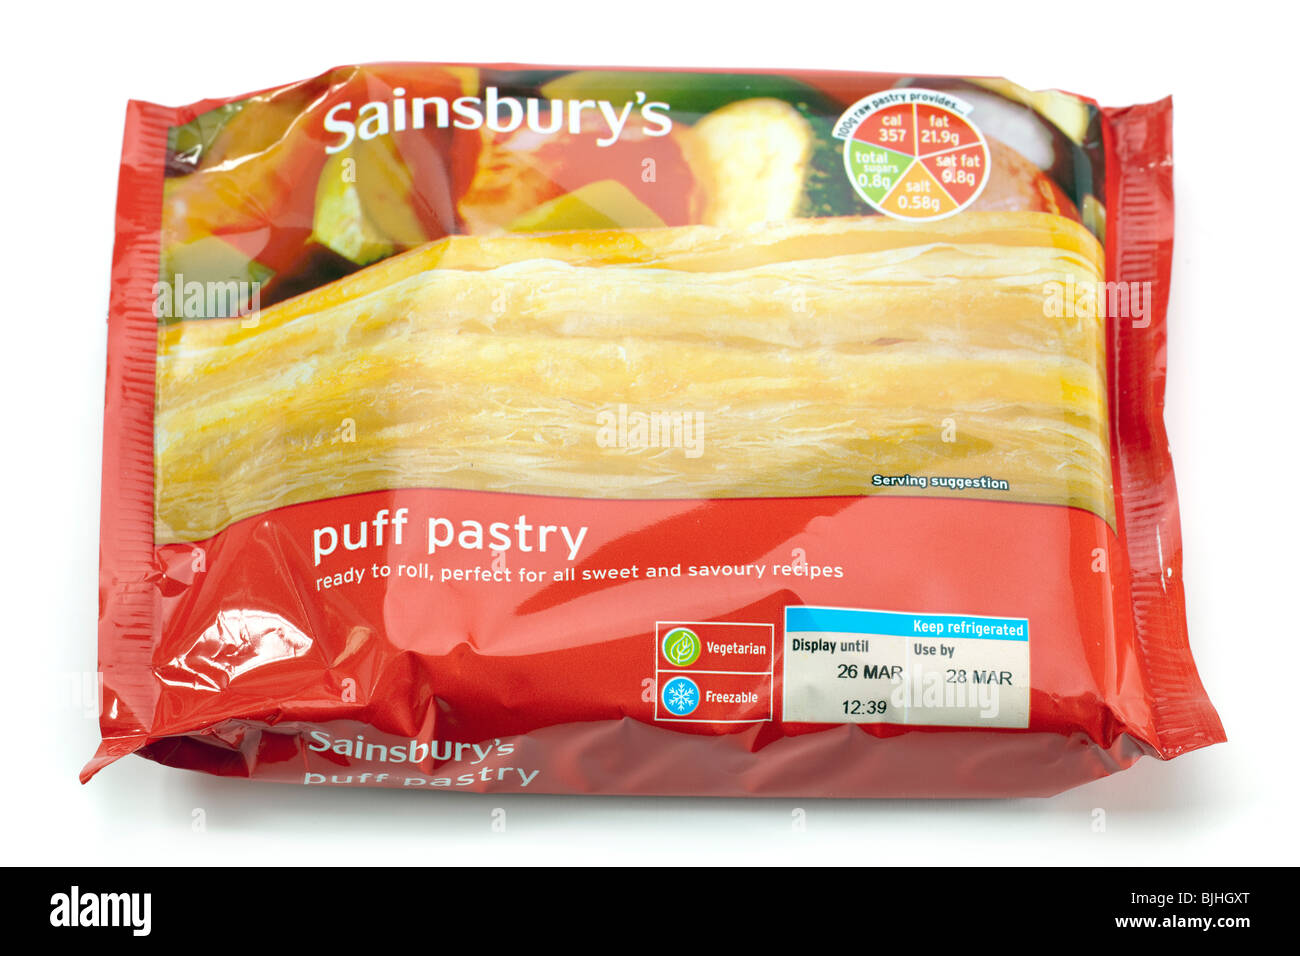 Packet of Sainsbury's ready to roll Puff Pastry - Stock Image